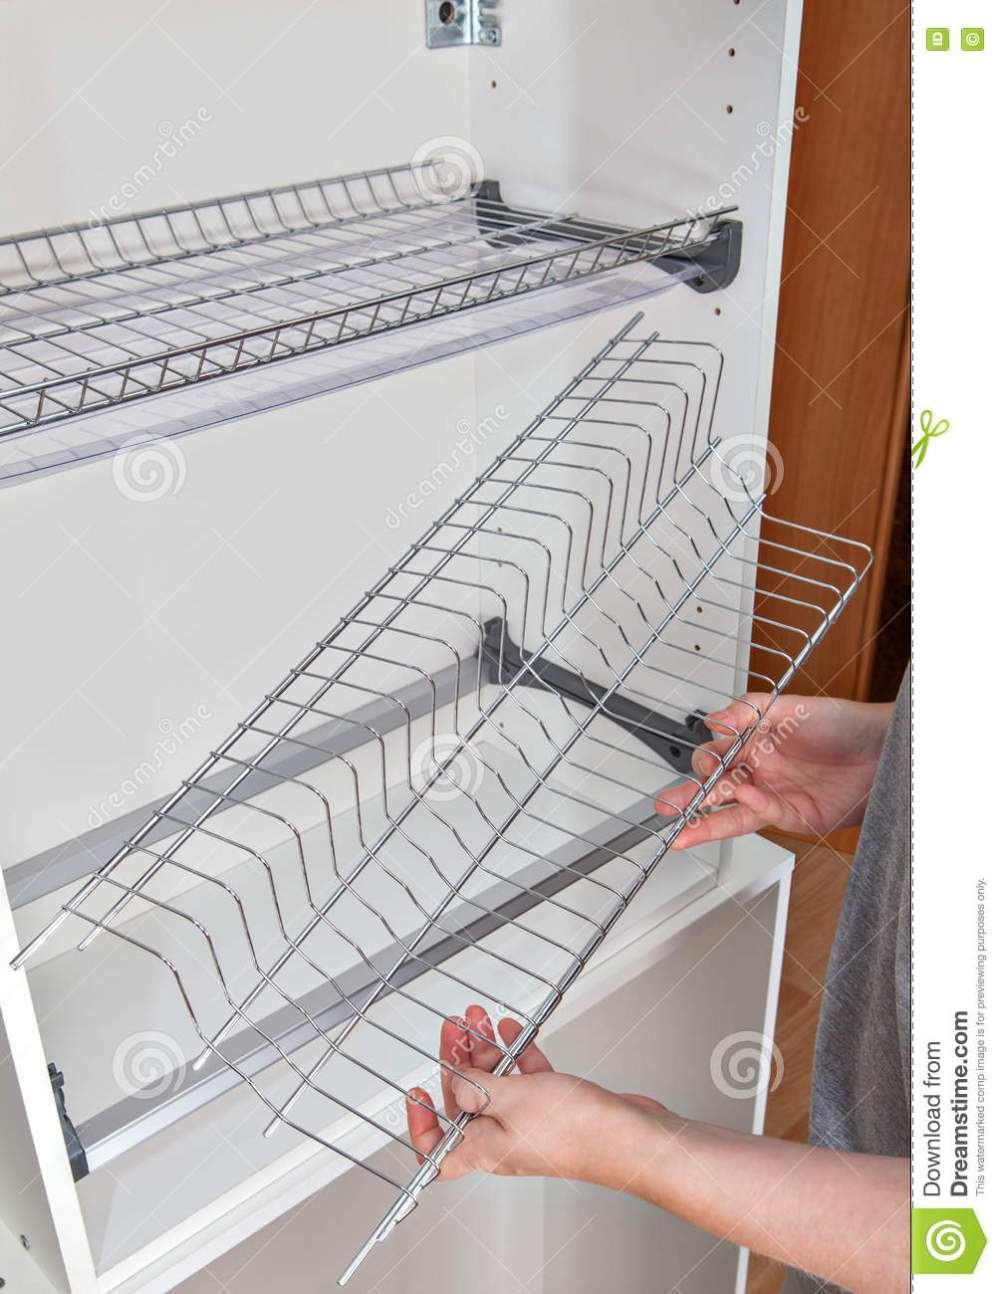 medium resolution of install wall mounted shelf under kitchen cabinet with inside dish rack with drip tray close up of a woman hands holds wire part